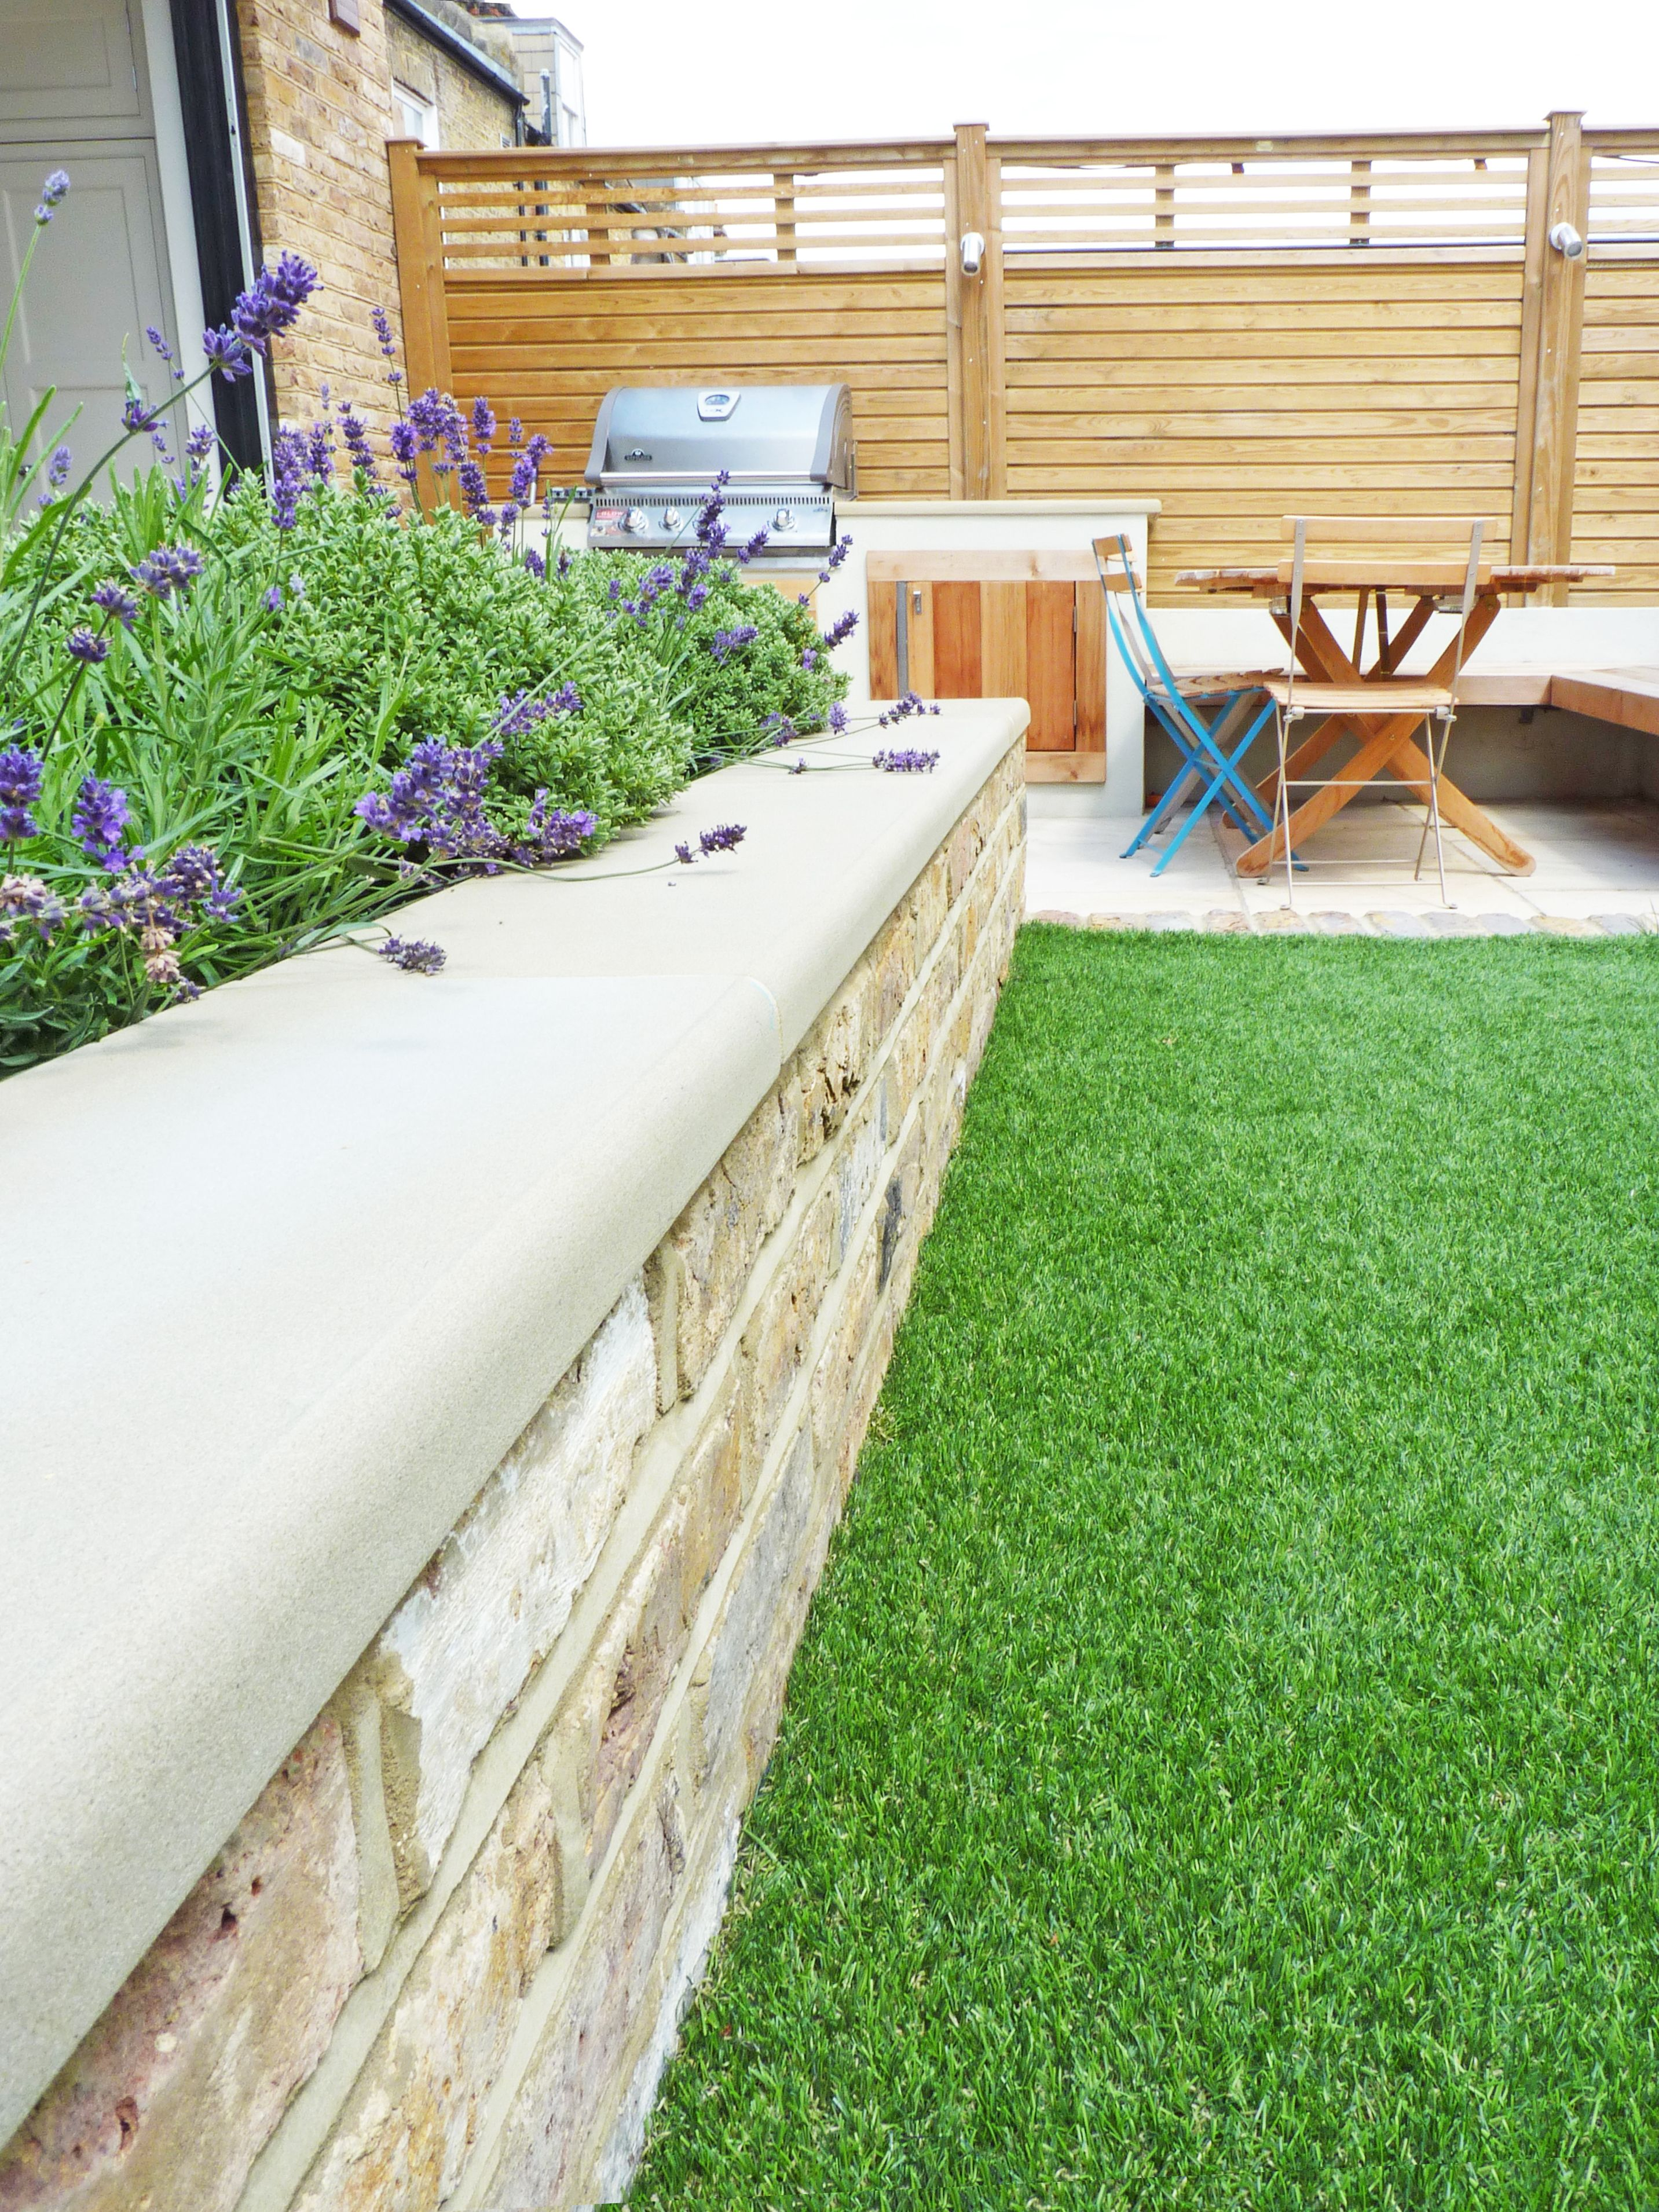 We designed this swing garden to be functional and low maintenance